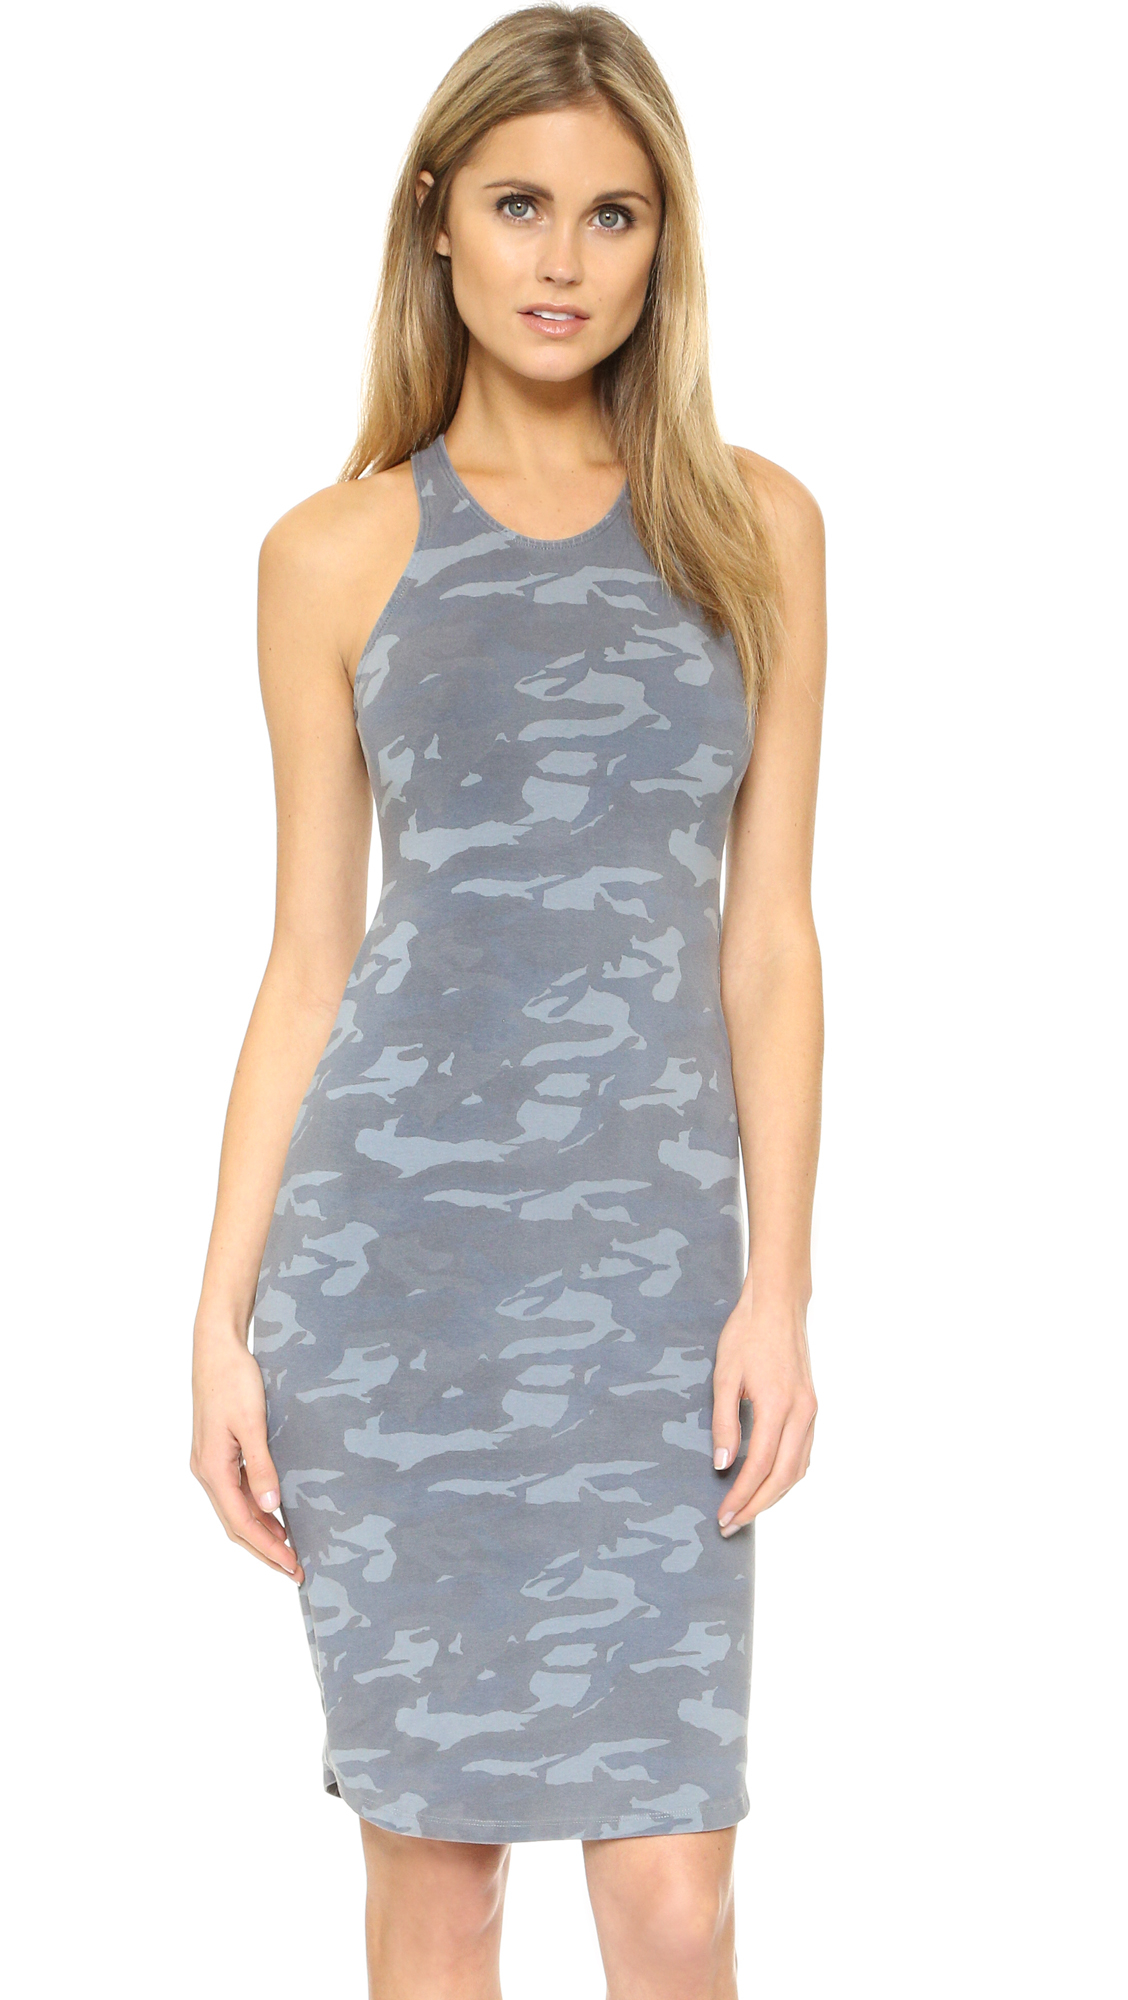 Luxury Camo Party Dress Illustration - Womens Dresses & Gowns ...